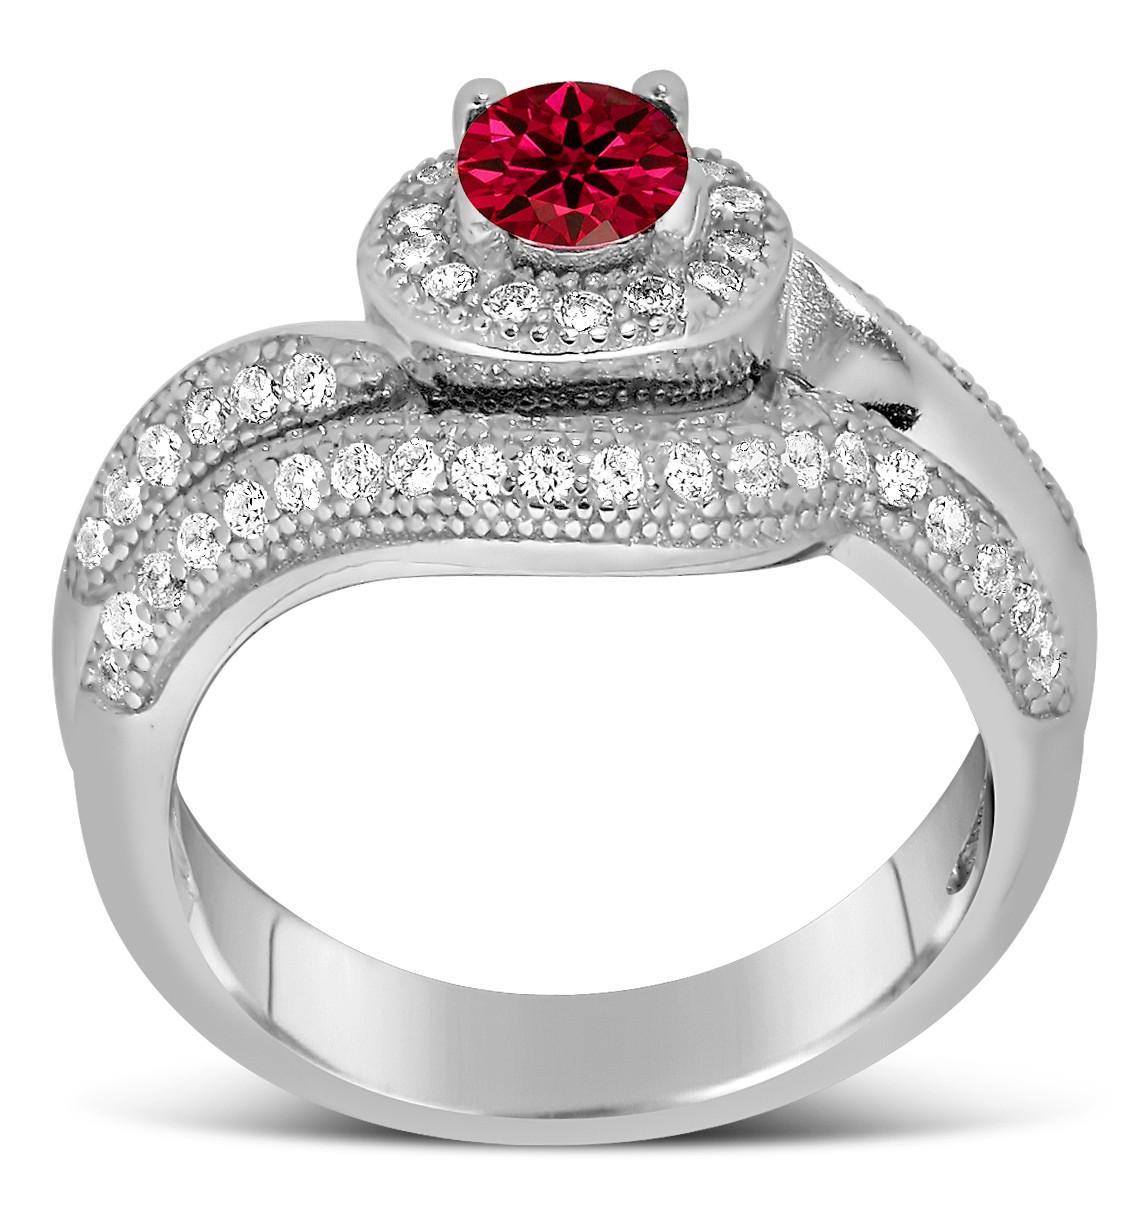 Antique Designer 2 Carat Red Ruby And Diamond Bridal Ring